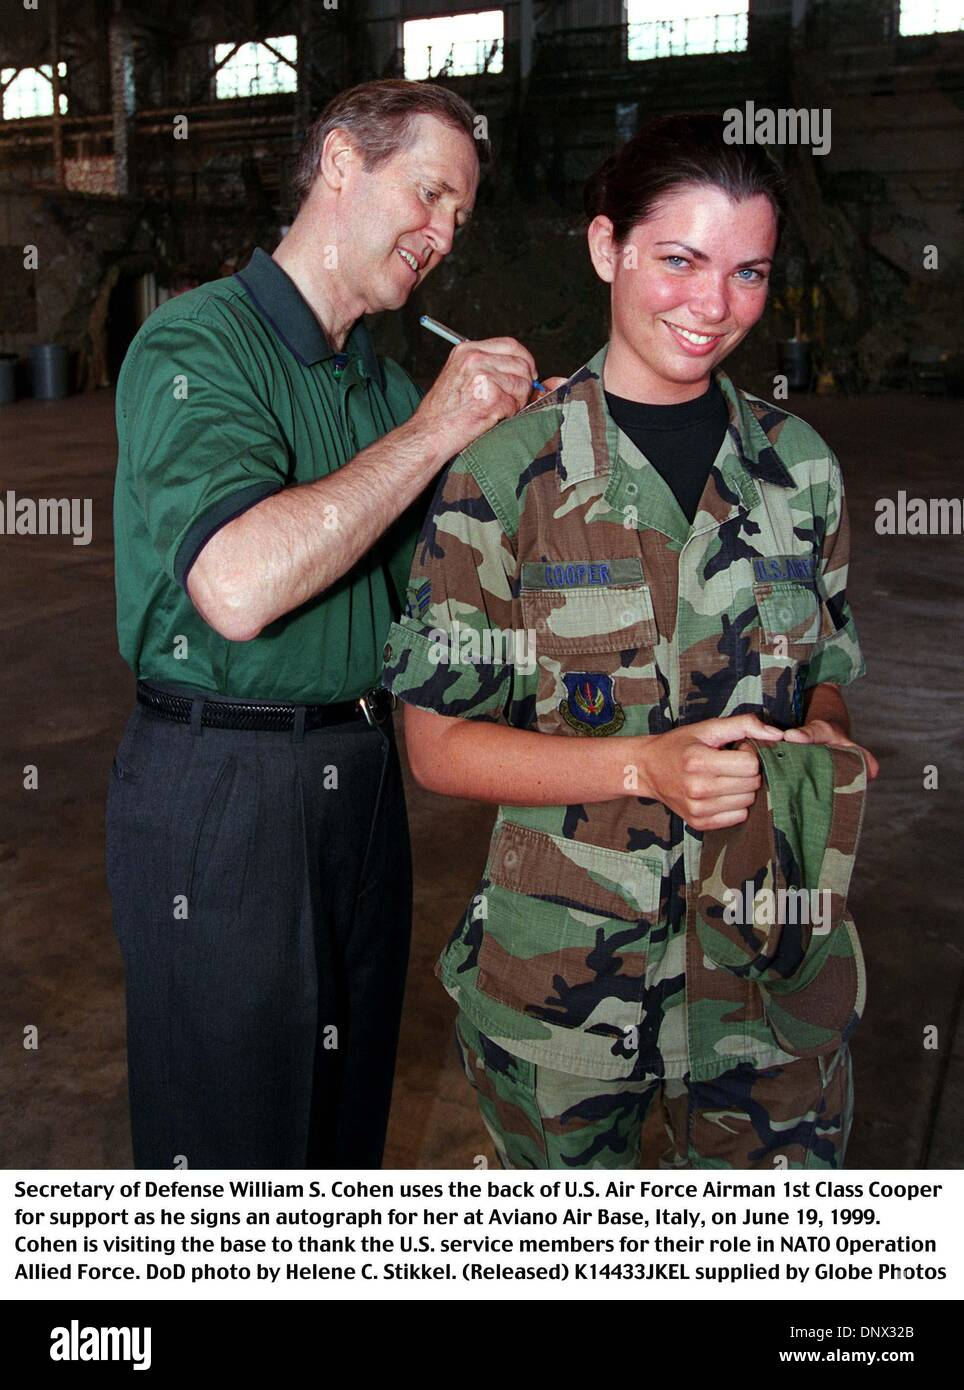 June 19, 1999 - K14433JKEL    06/19/99.990619-D-2987S-082..Secretary of Defense William S. Cohen uses the back of U.S. Air Force Airman 1st Class Cooper for support as he signs an autograph for her at Aviano Air Base, Italy, on June 19, 1999.  Cohen is visiting the base to thank the U.S. service members for their role in NATO Operation Allied Force.  DoD  Helene C. Stikkel.  (Relea - Stock Image